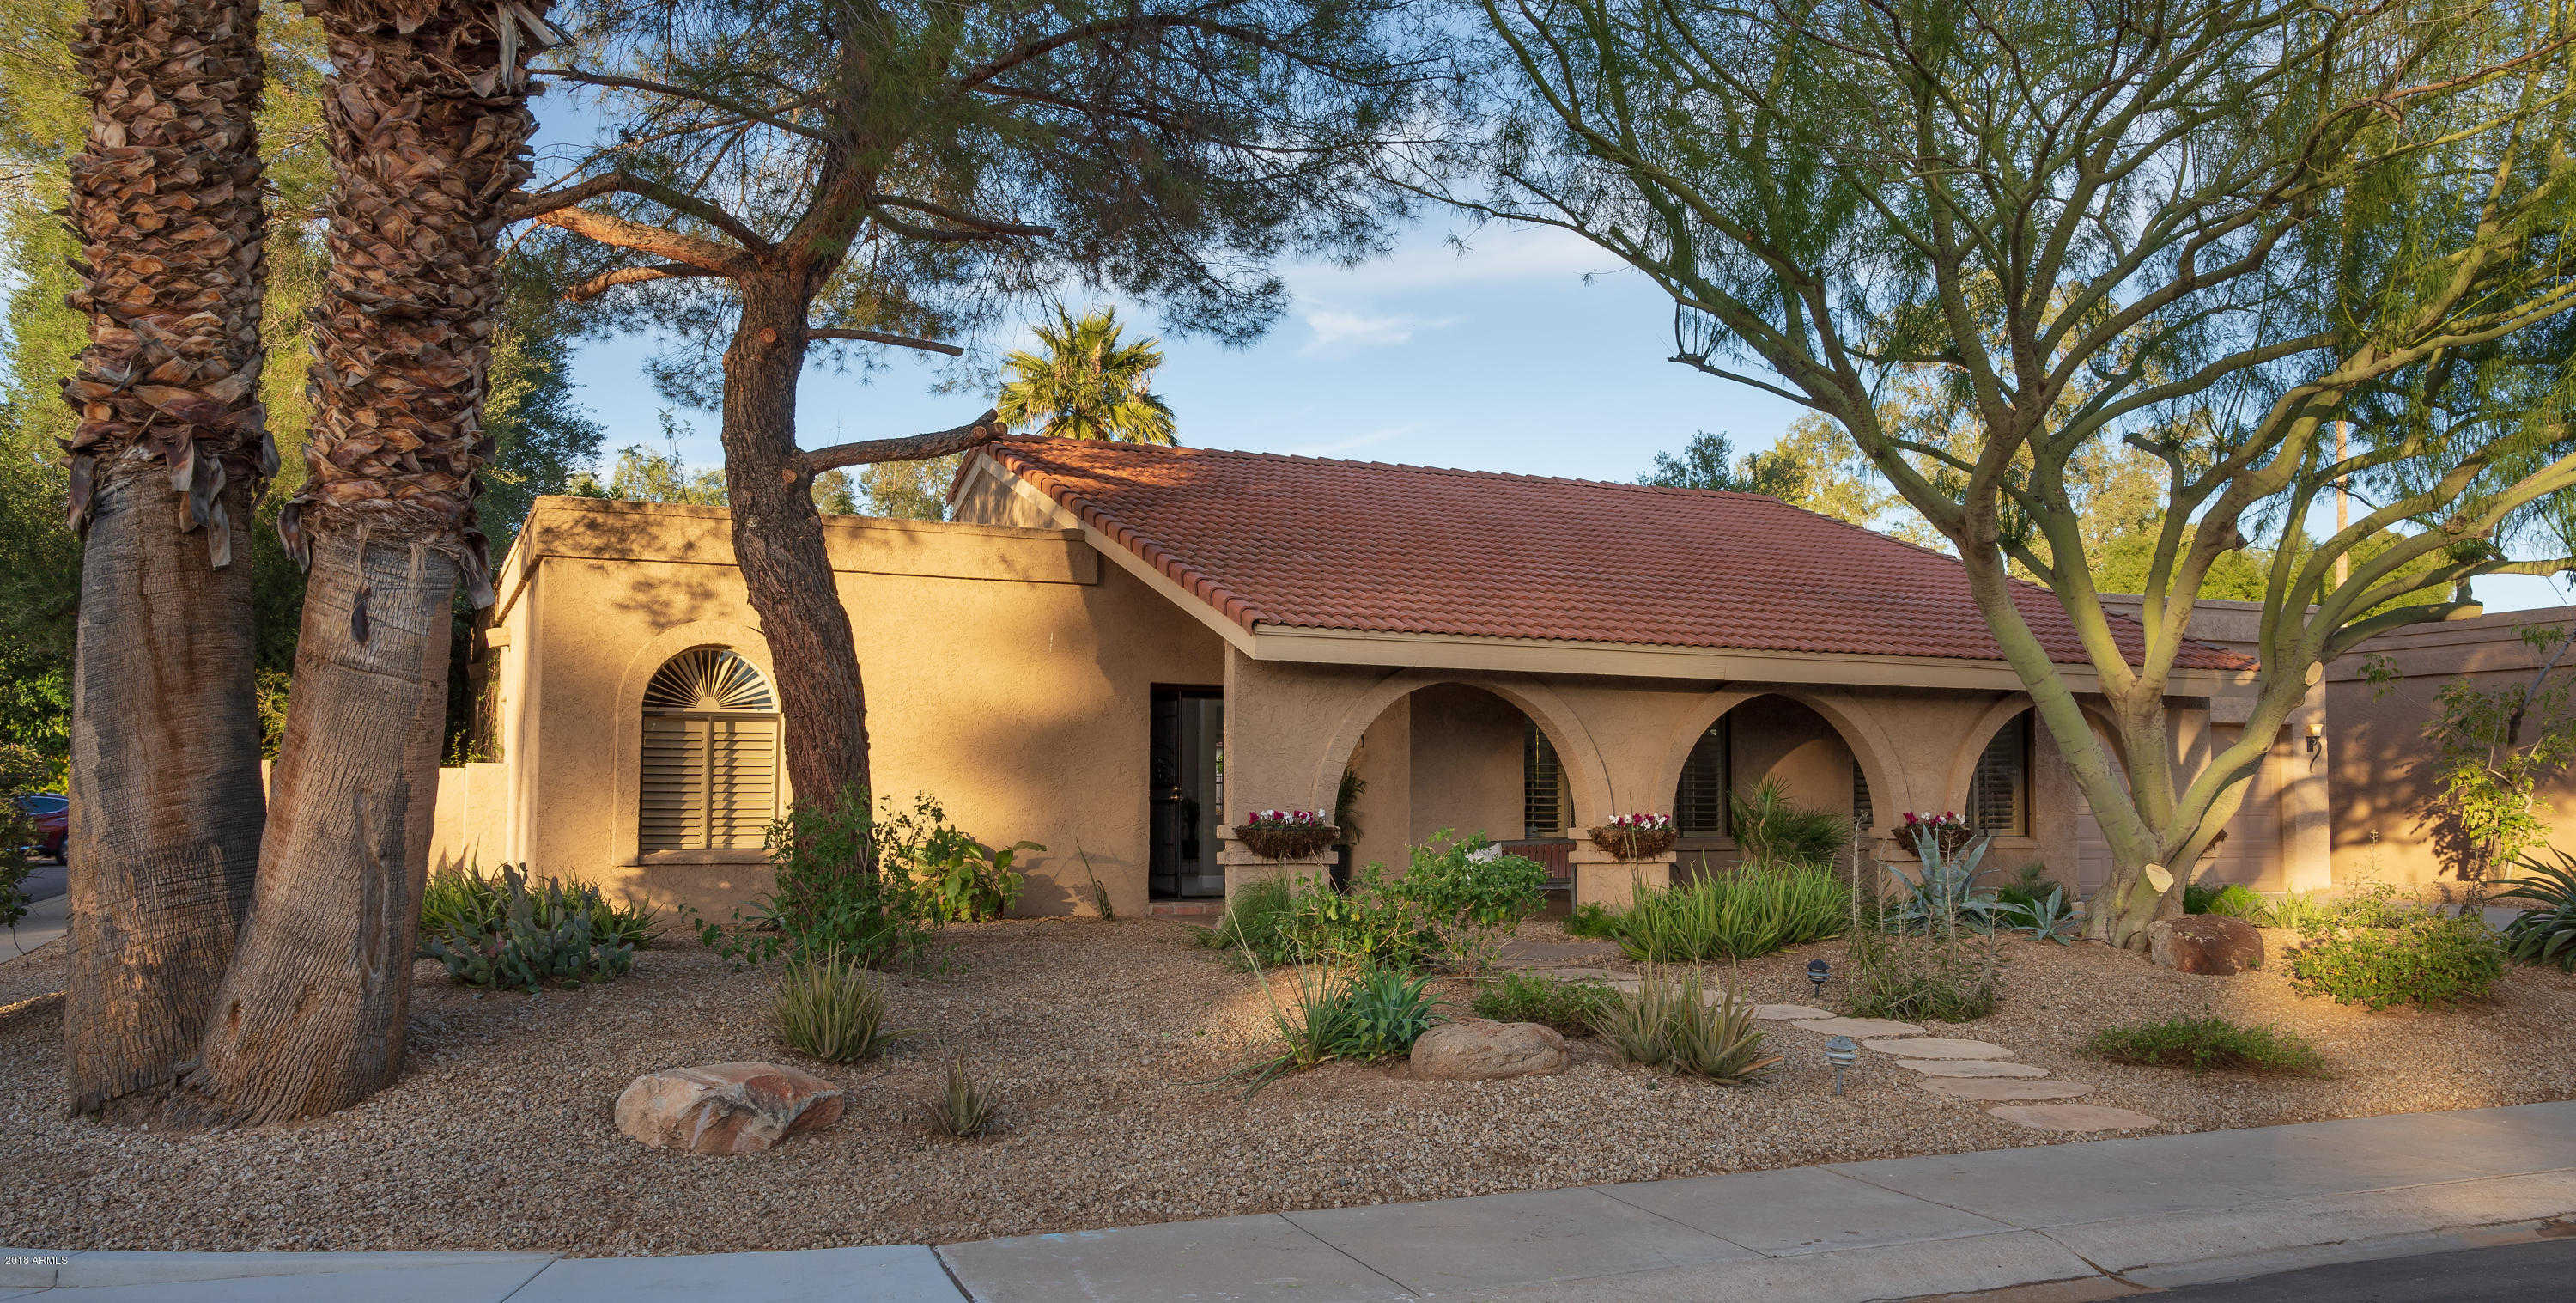 $669,000 - 4Br/3Ba - Home for Sale in Paradise Park Trails, Scottsdale